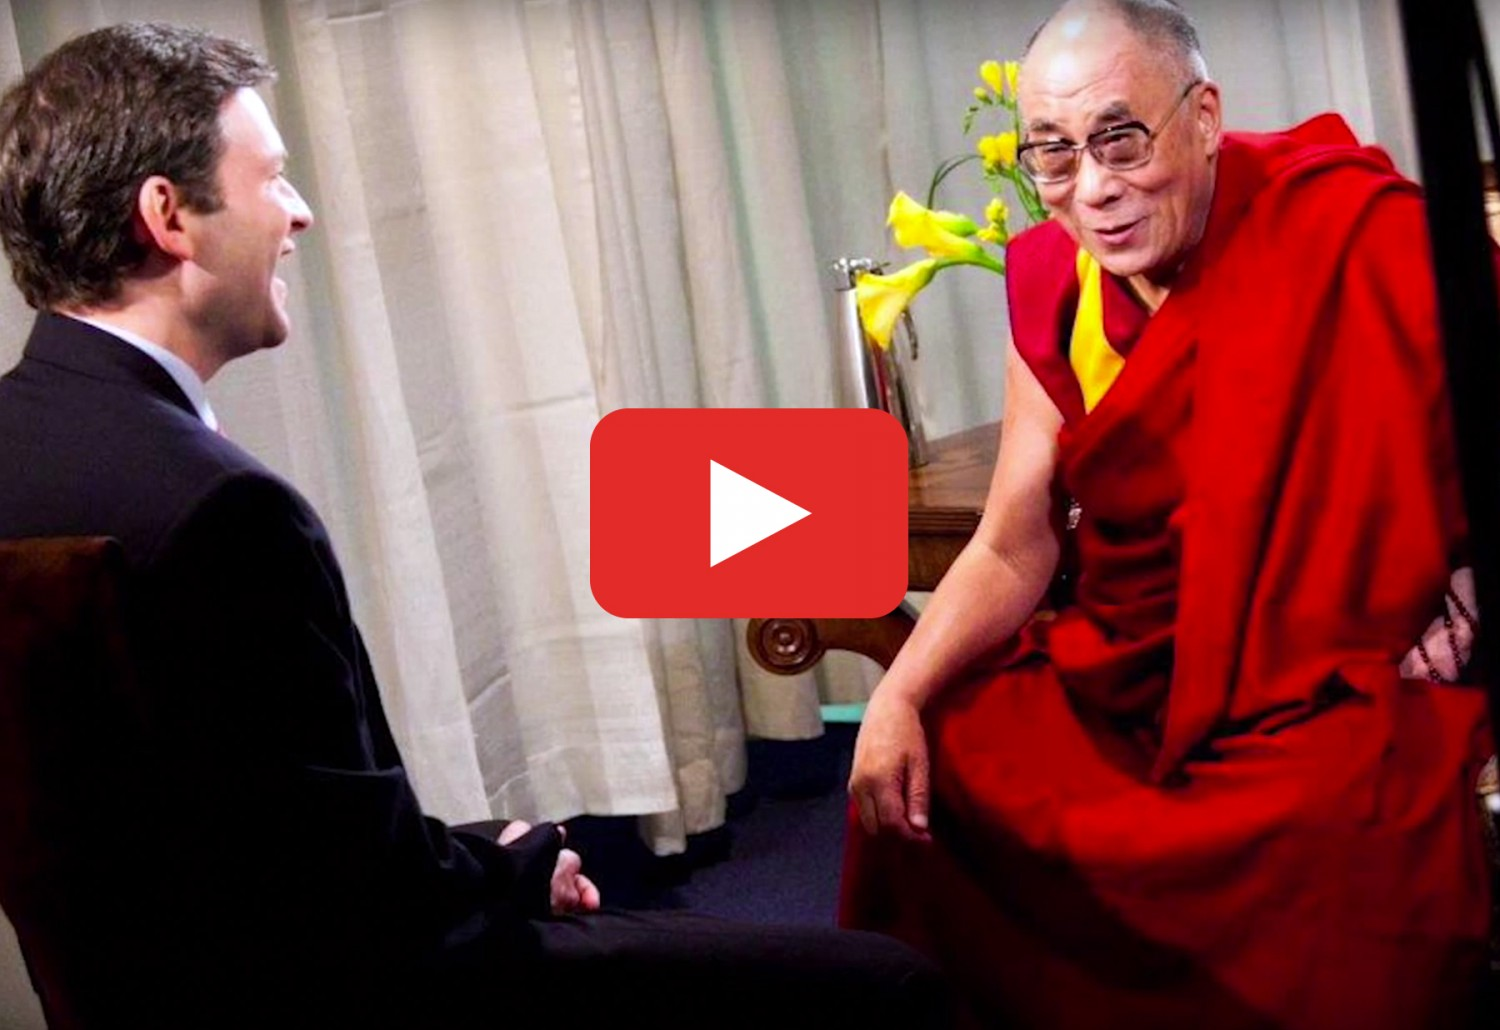 Dalai Lama Quotes About Self-Interest and Meditation